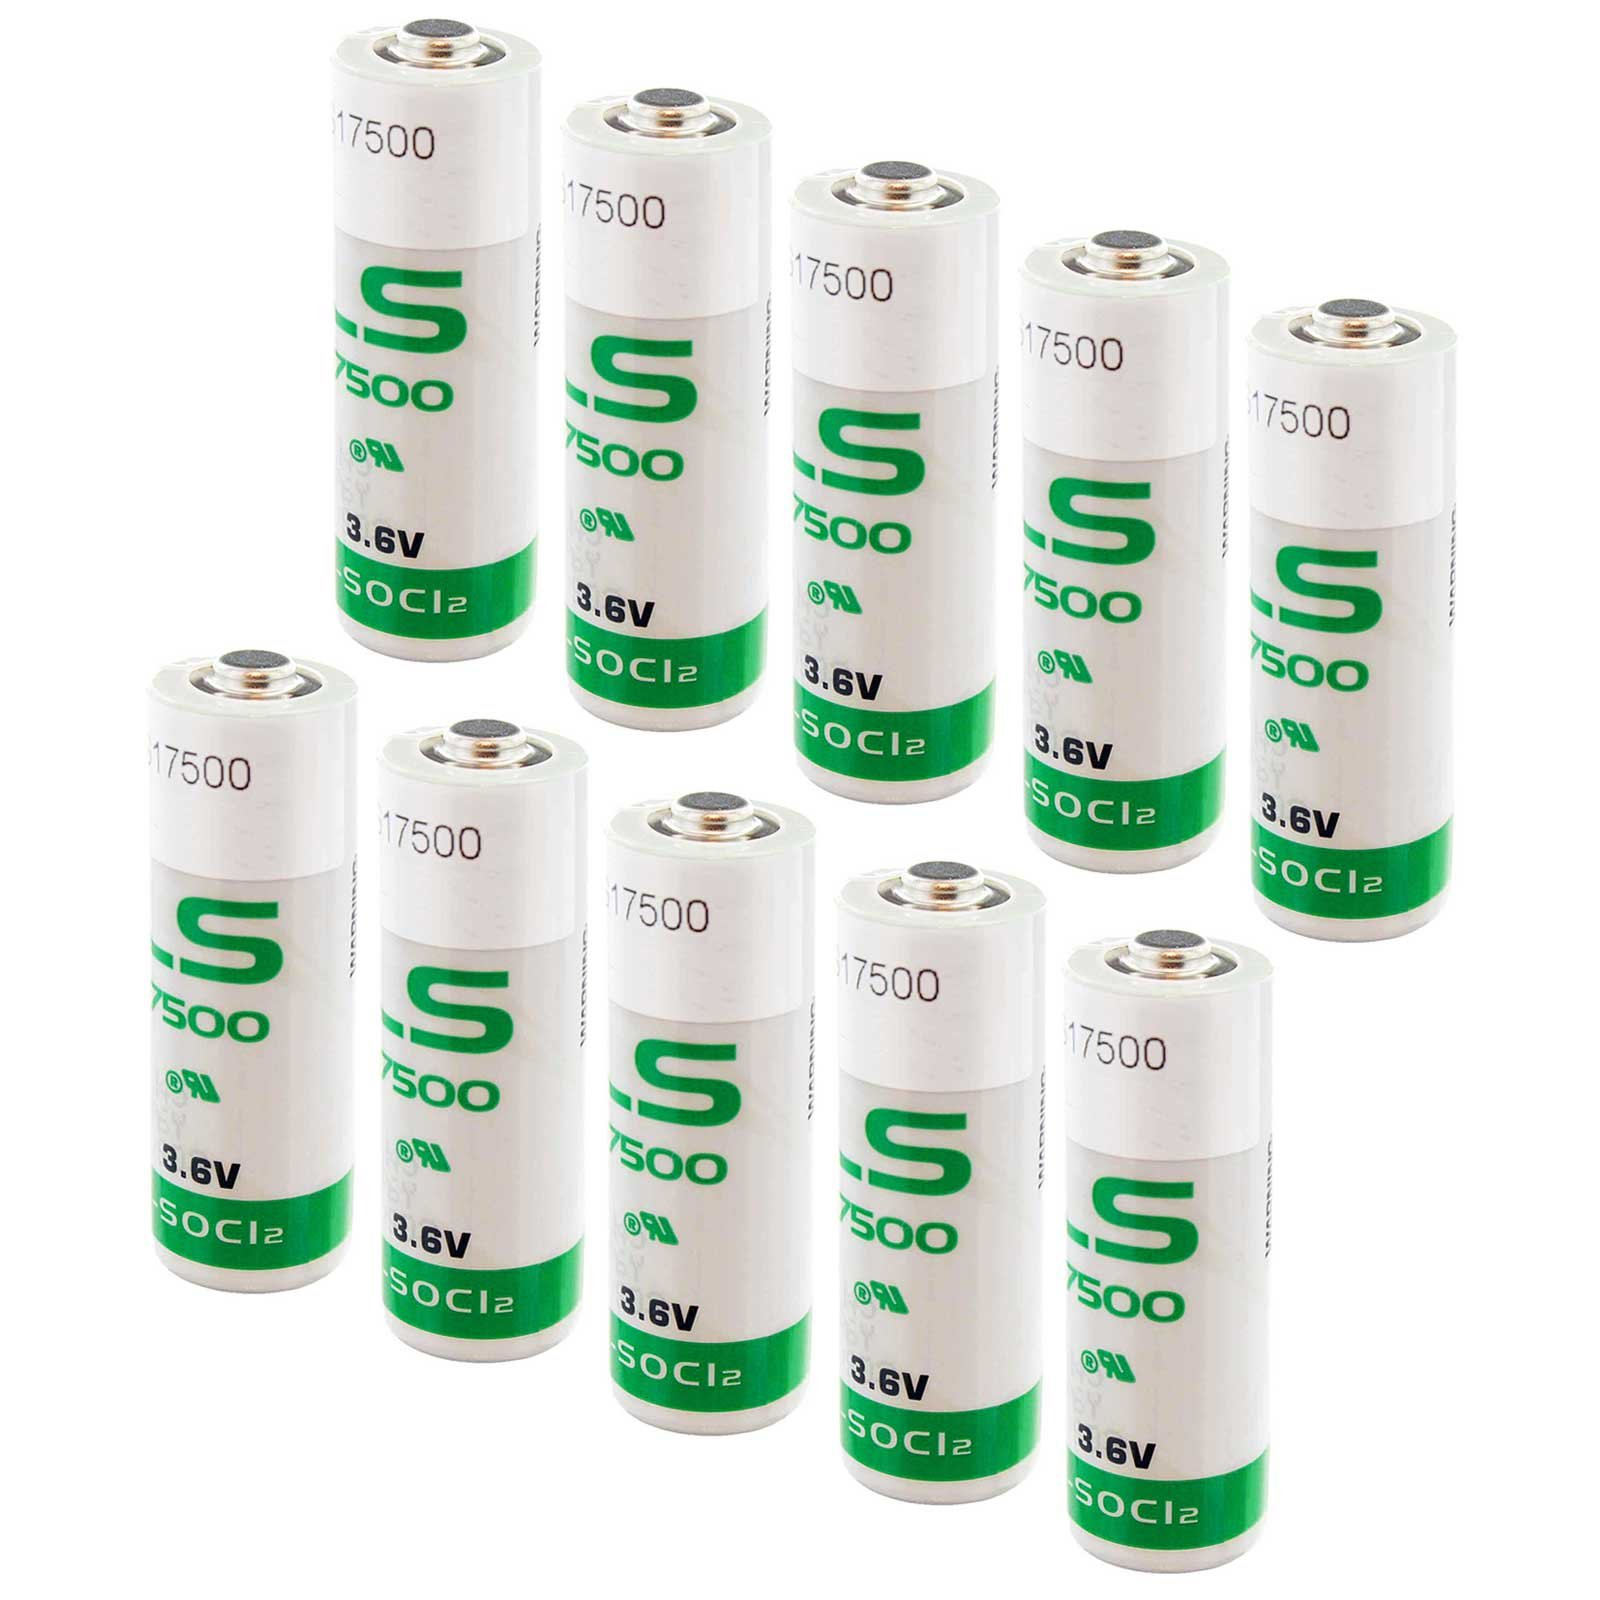 10x SAFT LS17500 Size A 3.6V 3600mAh Lithium Battery for Emergency Backup, Data Collection, AMR Add-ons, Smoke Alarms, Carbon Monoxide Detectors, Intrusion Sensors, Fleet Monitoring by Exell Battery